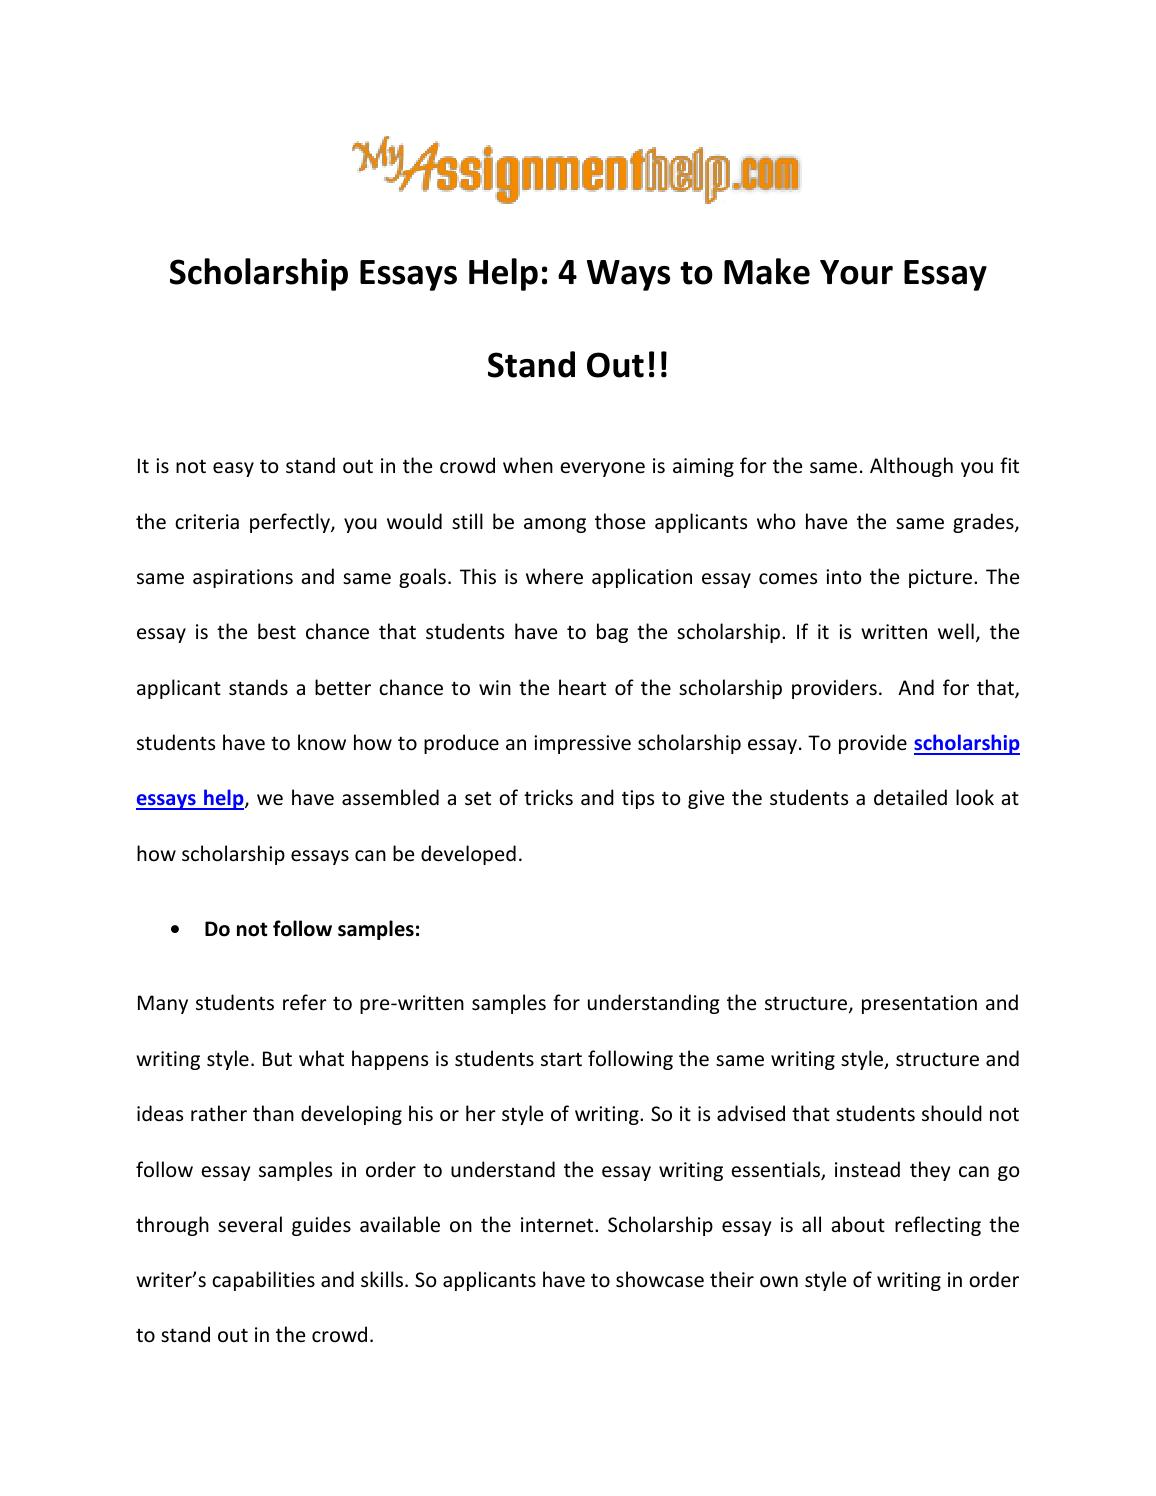 008 Scholarship Essays Help Ways To Make Your Essay Stand Out By Tips For Writing Winning P Effective Singular Rotc Psc Reddit Full